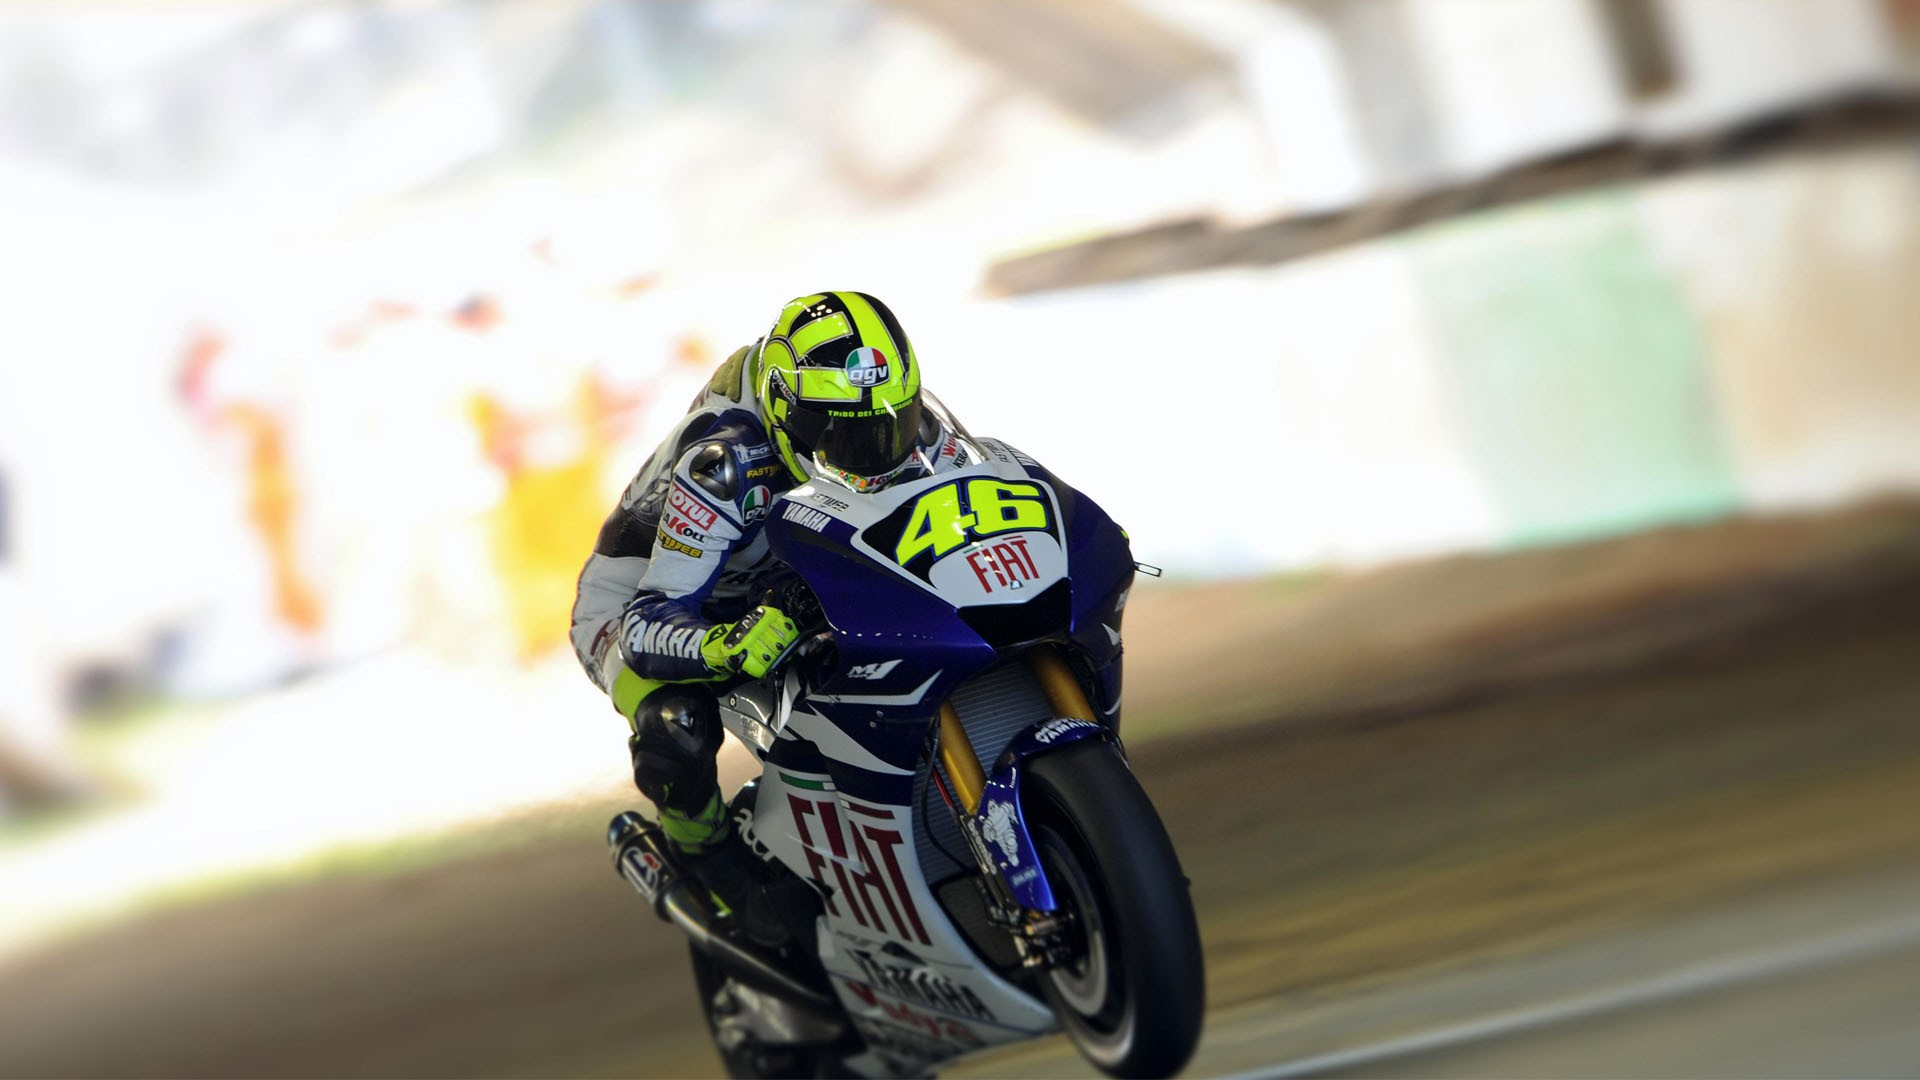 Rossi 4k Wallpapers For Your Desktop Or Mobile Screen Free